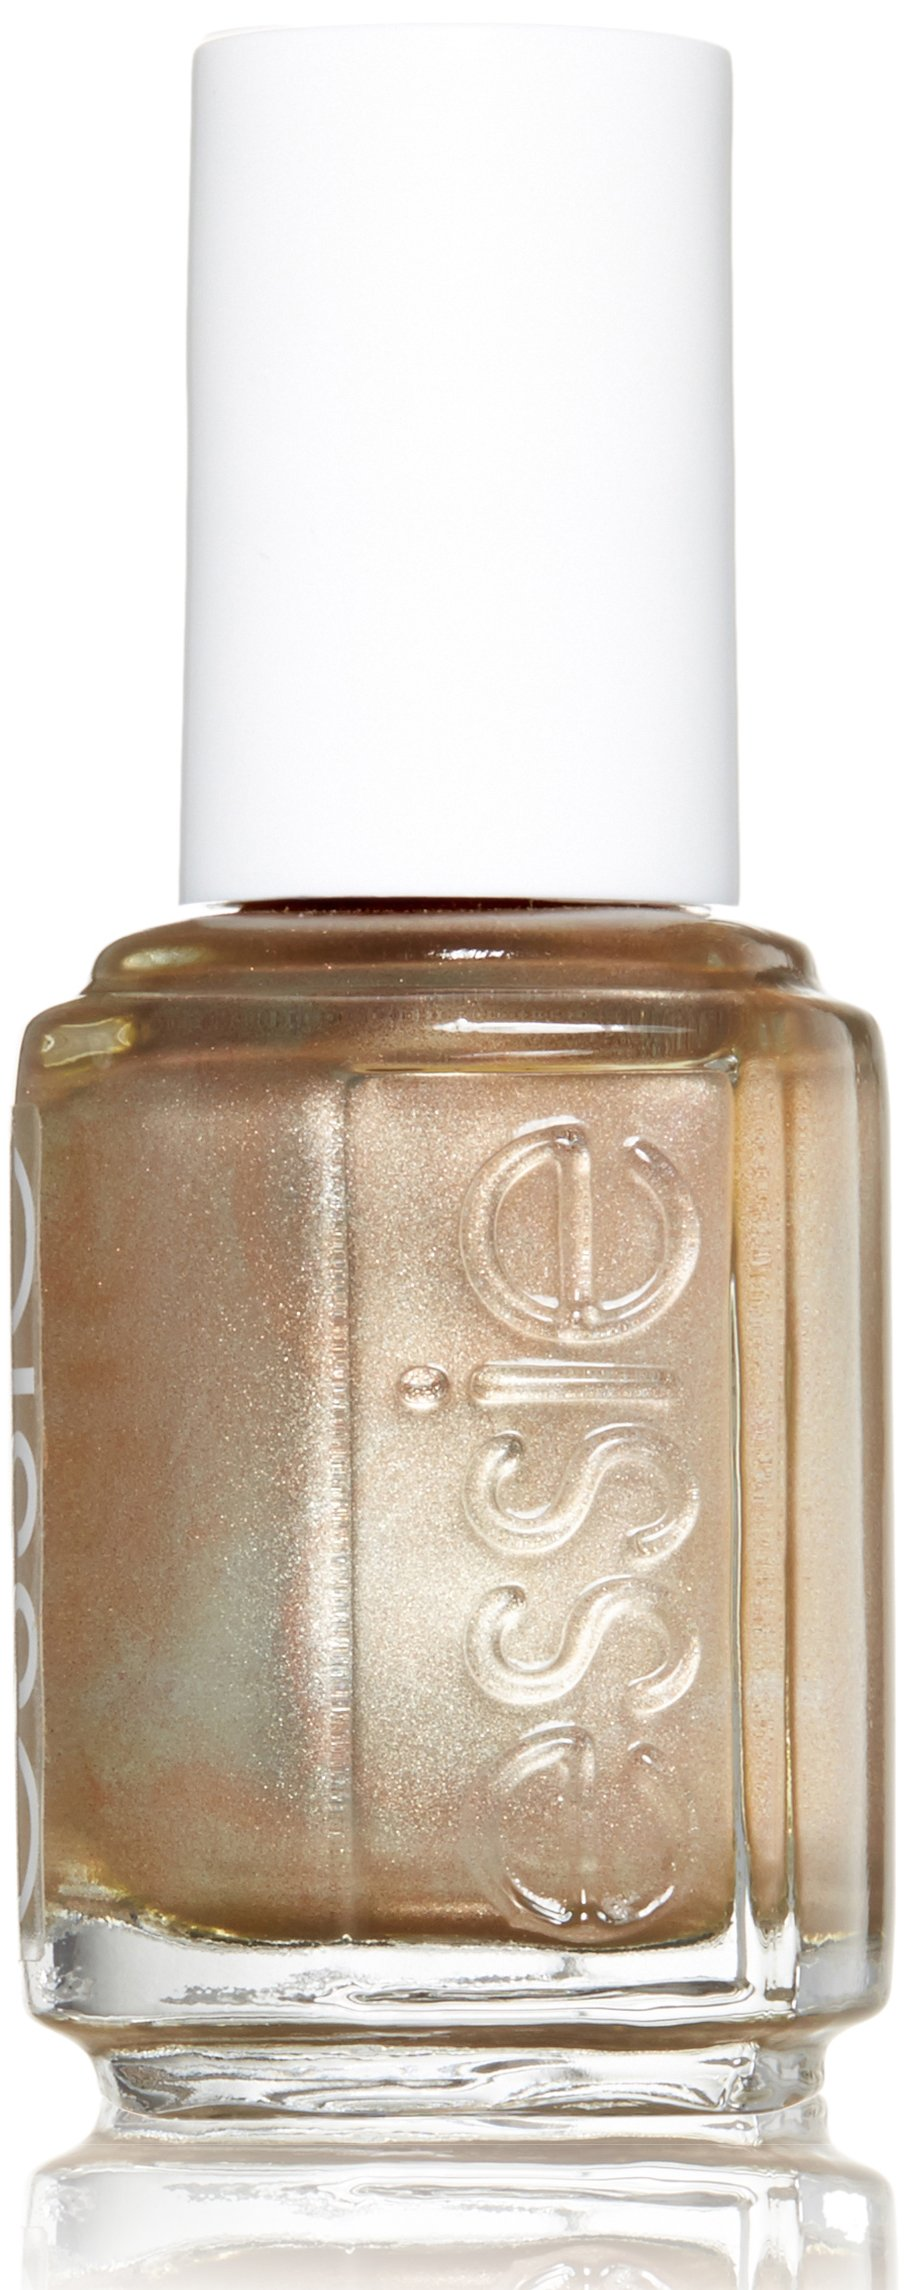 Amazon.com : Orly Nail Lacquer, Rage, 0.6 Fluid Ounce : Nail Polish ...